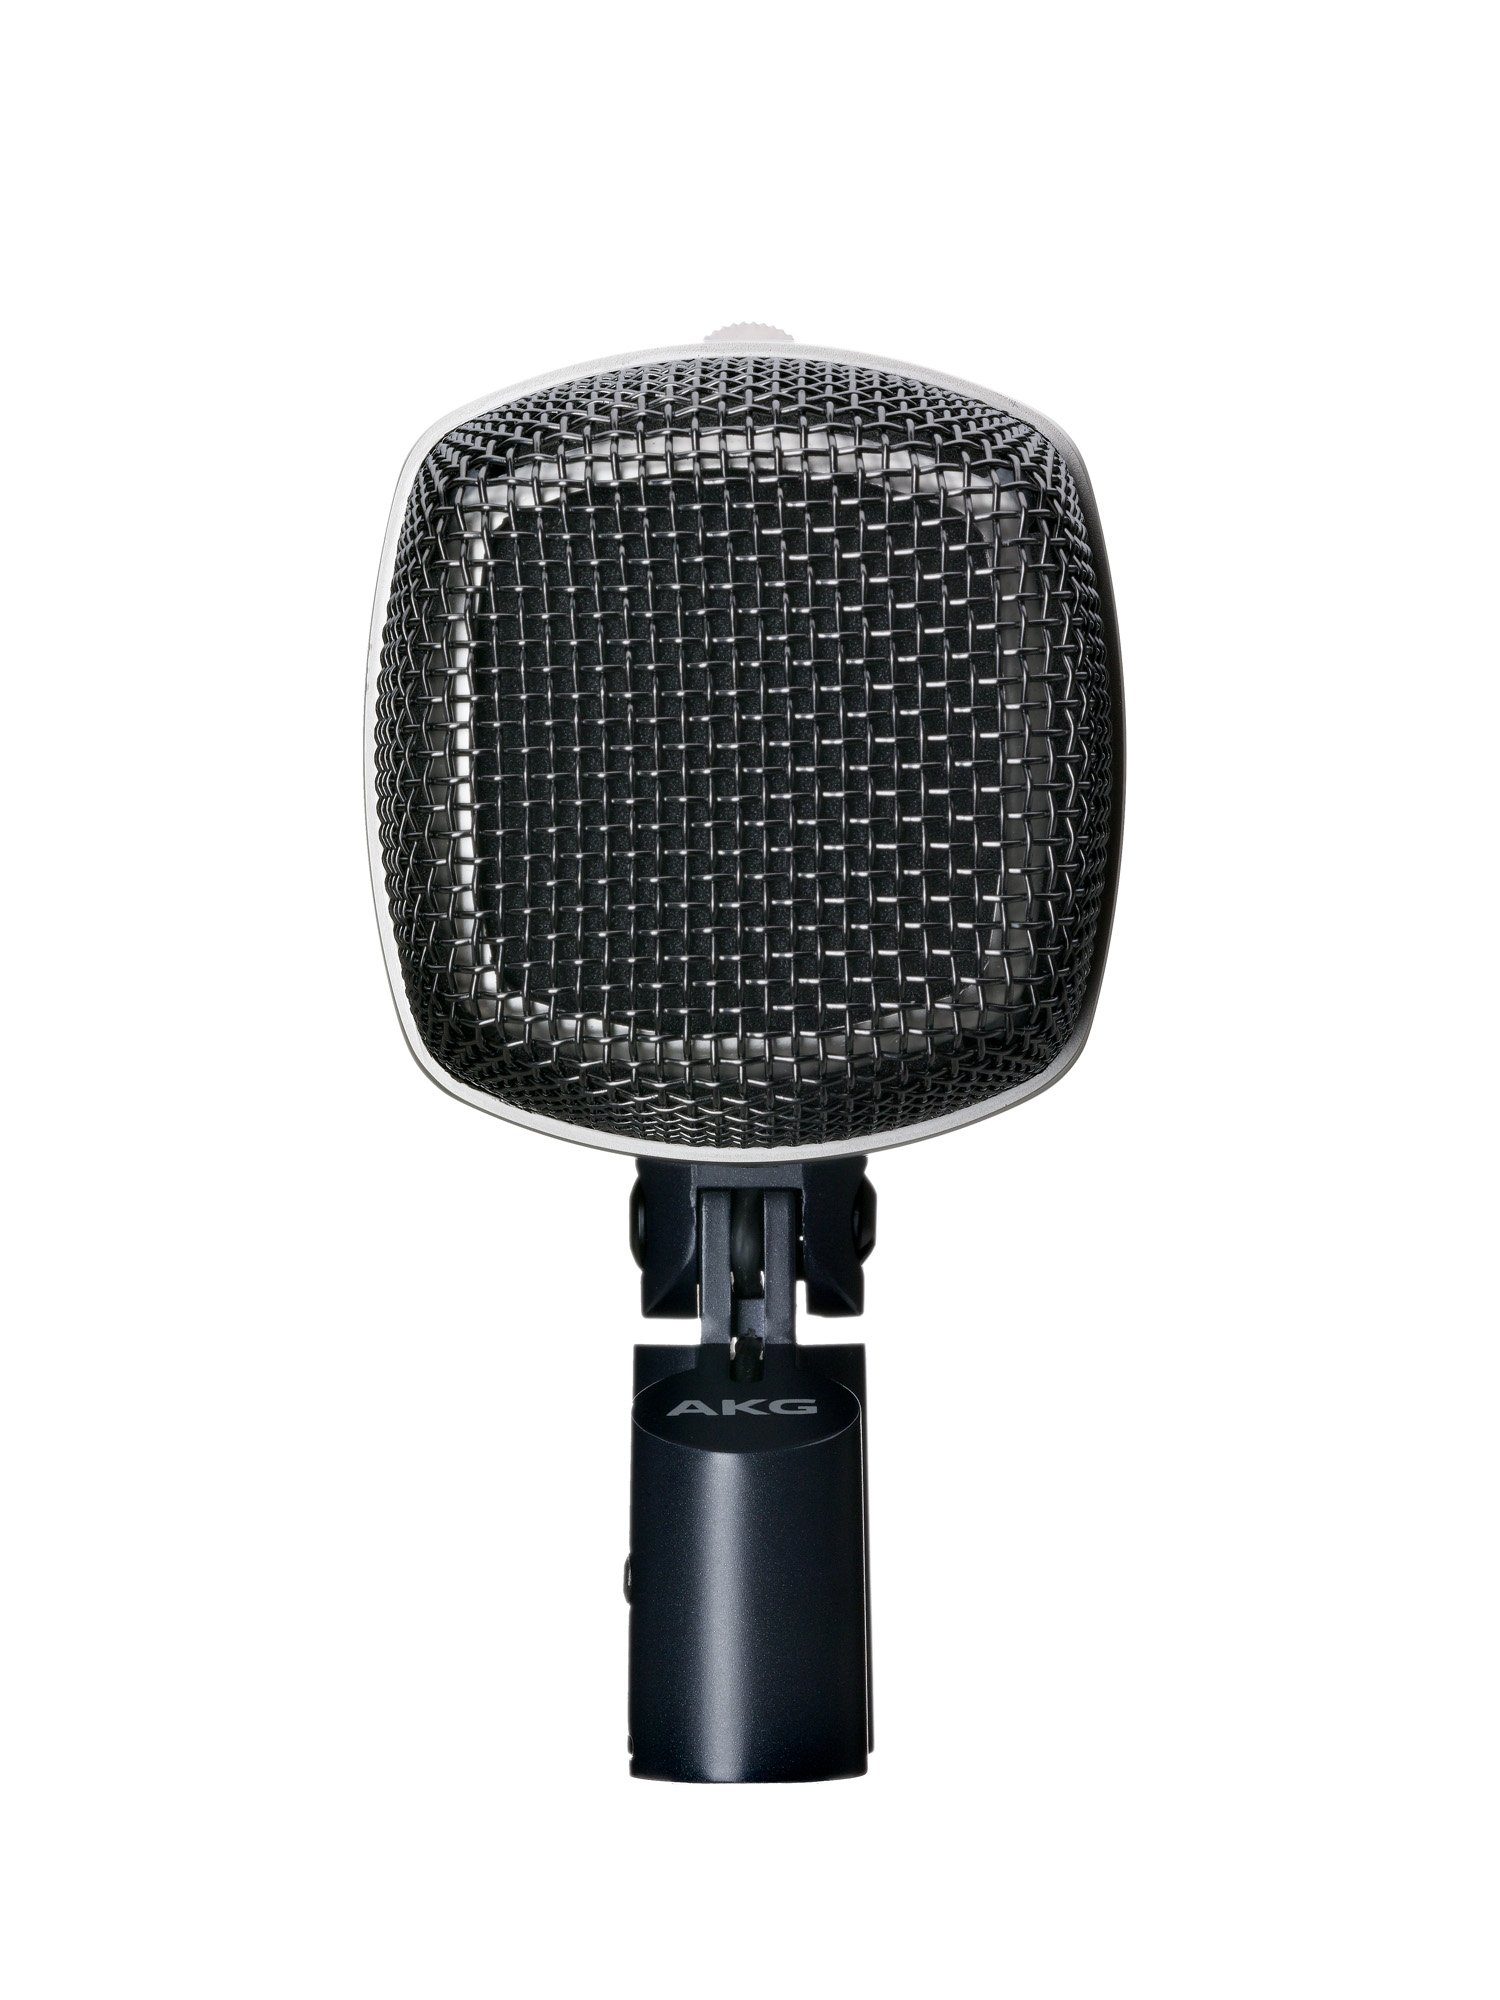 AKG D12 VR Reference Large-Diaphragm Dynamic Microphone by AKG Pro Audio